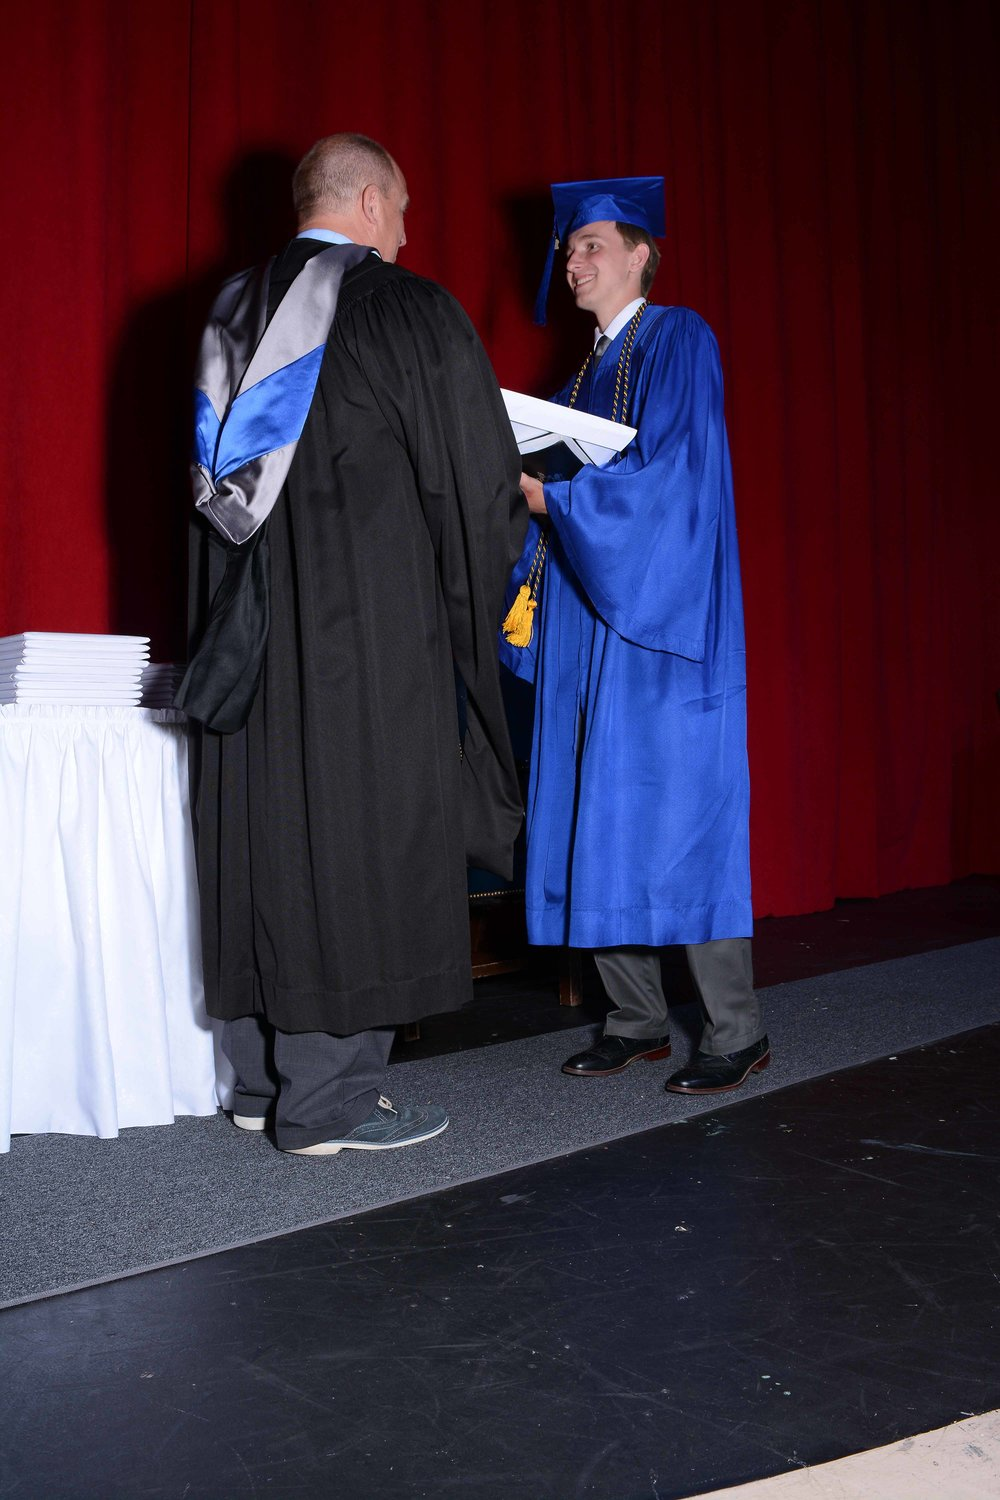 May14 Commencement71.jpg